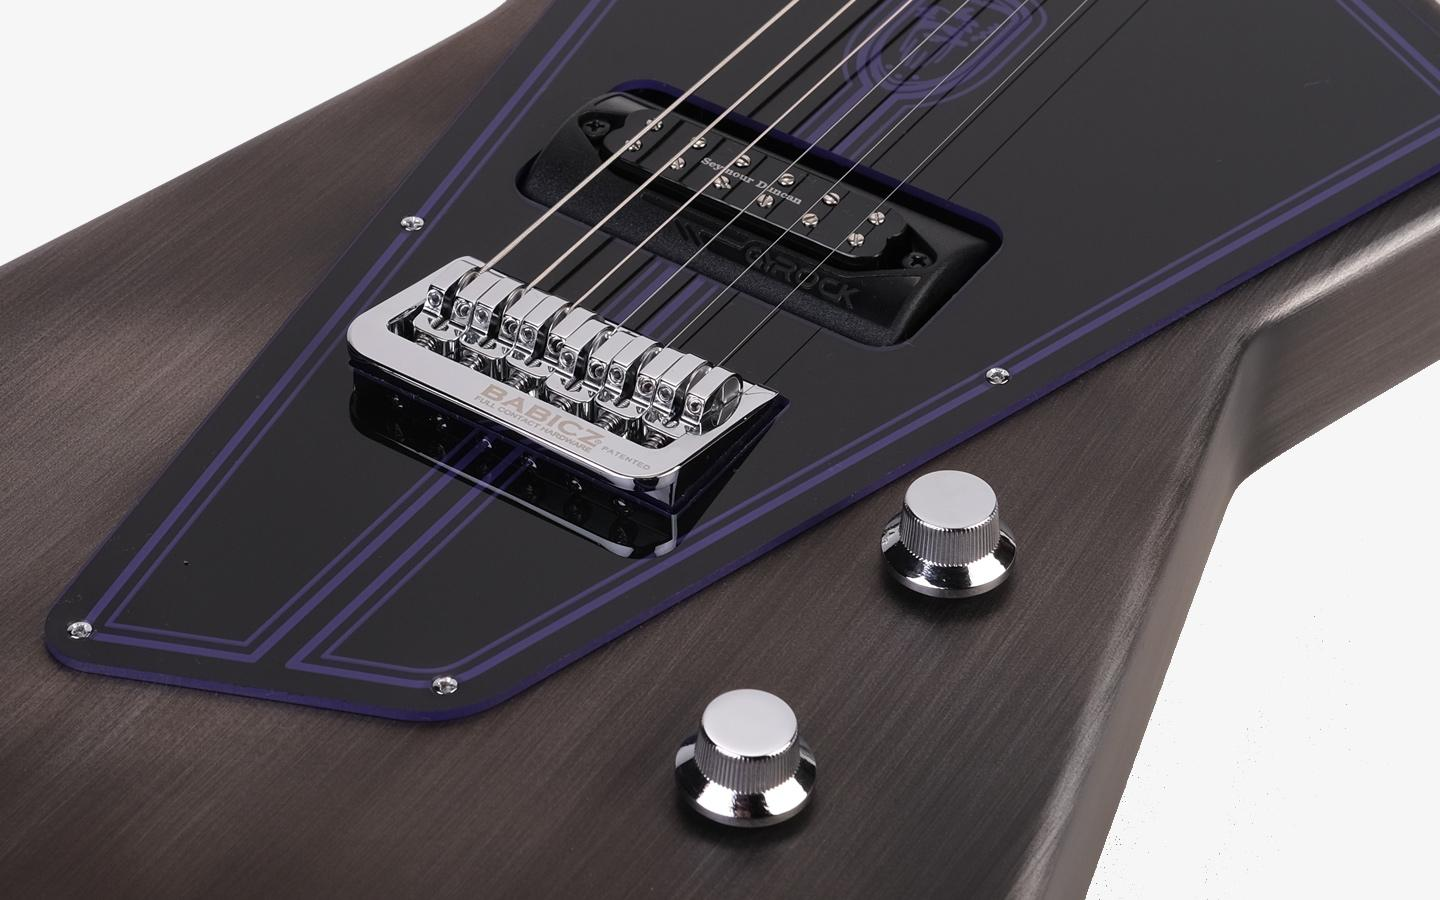 The angular guitar features the Gyrock pickup selection system from Wild Customs, which mounts up to six different pickups to a carousel setup in the body